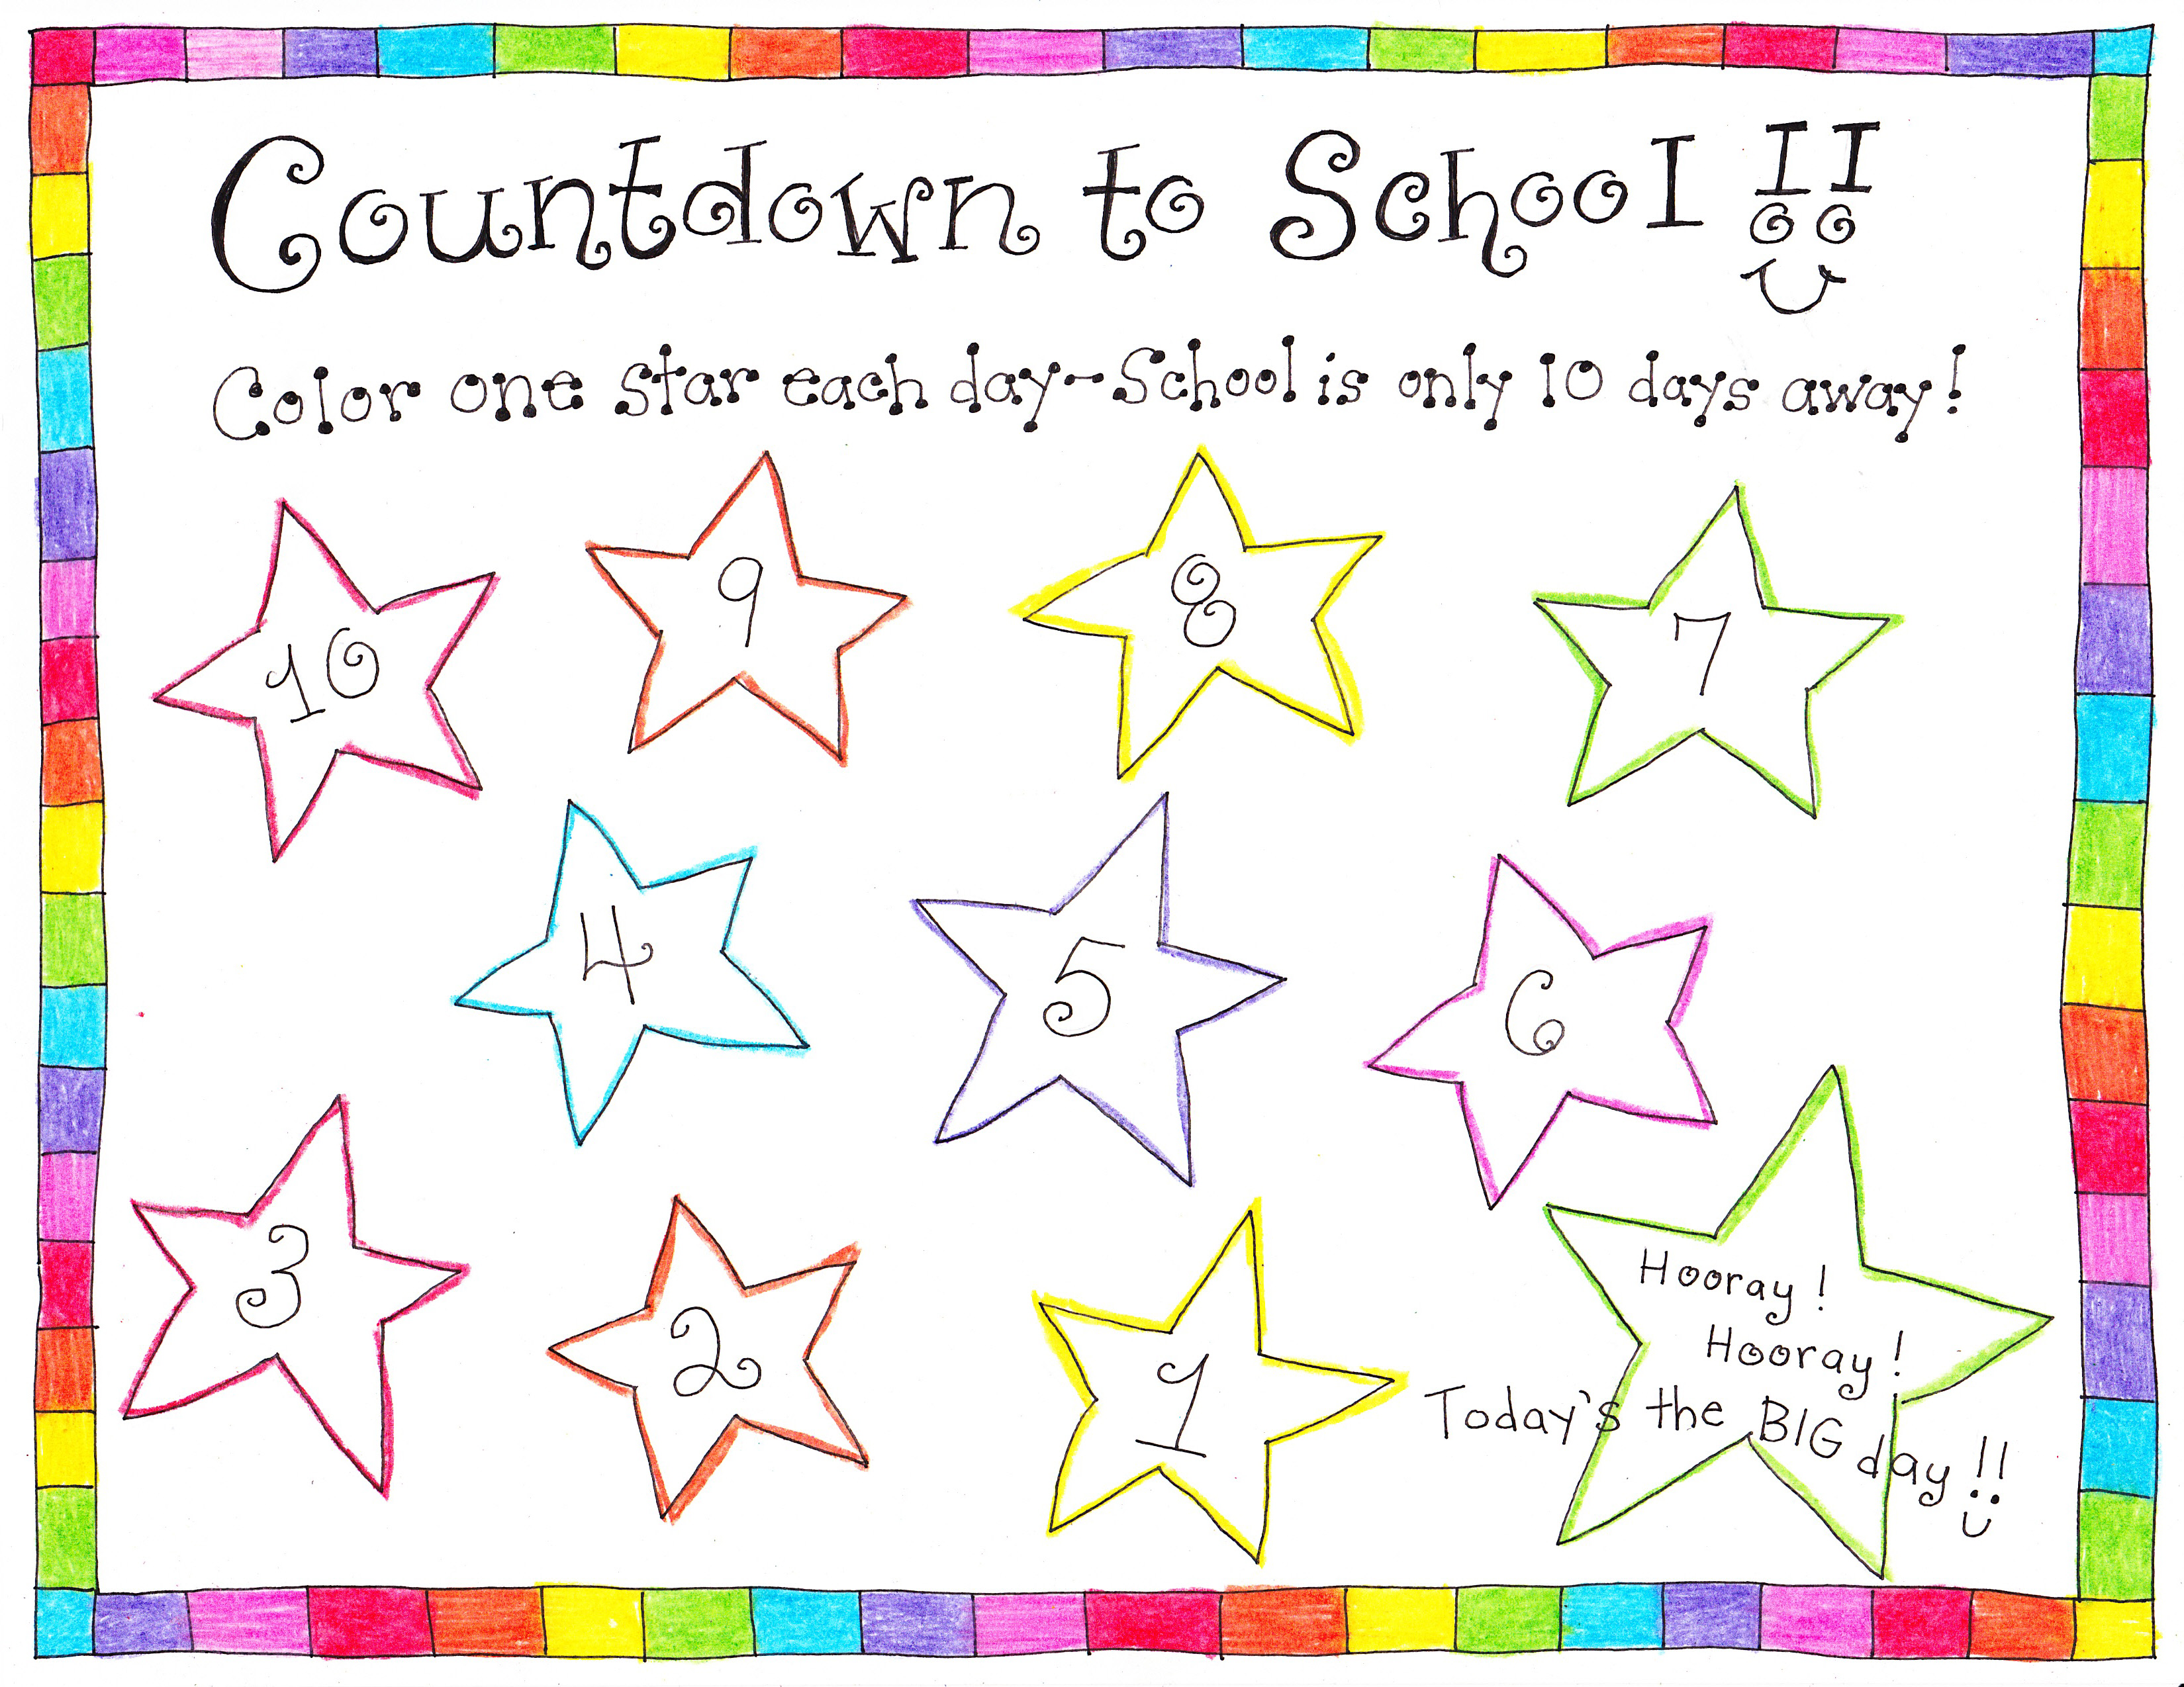 back to school countdown image